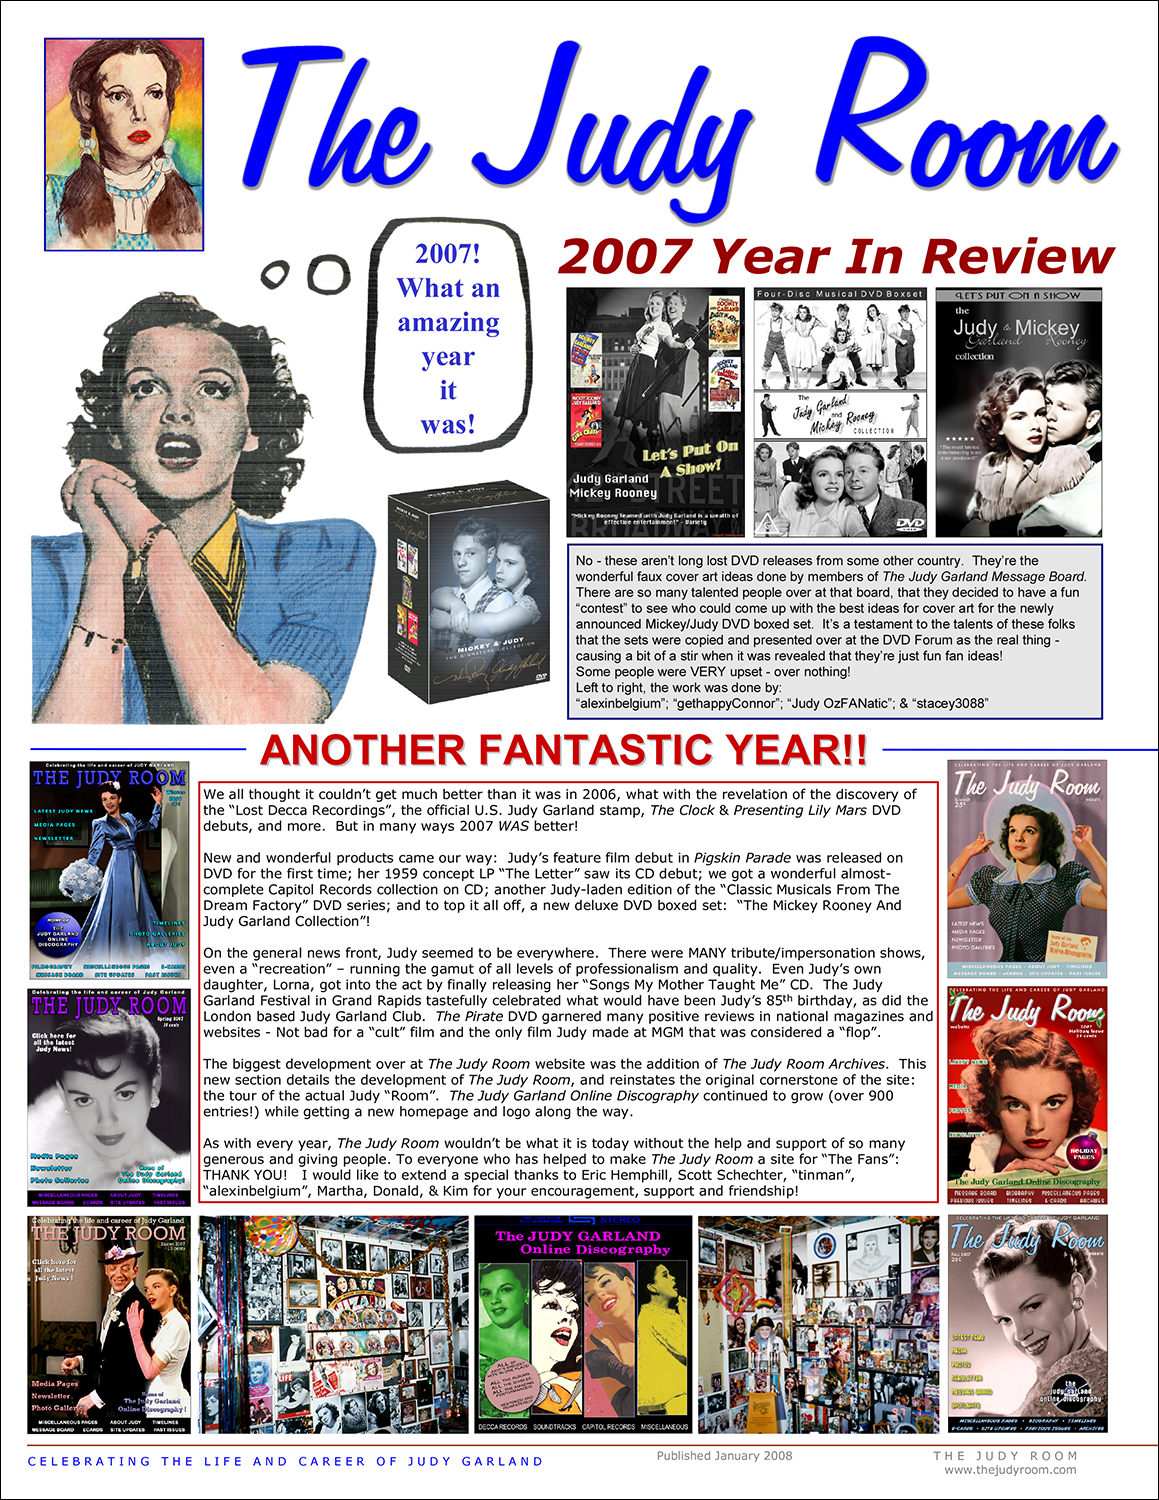 The Judy Room's 20006 Year in Review